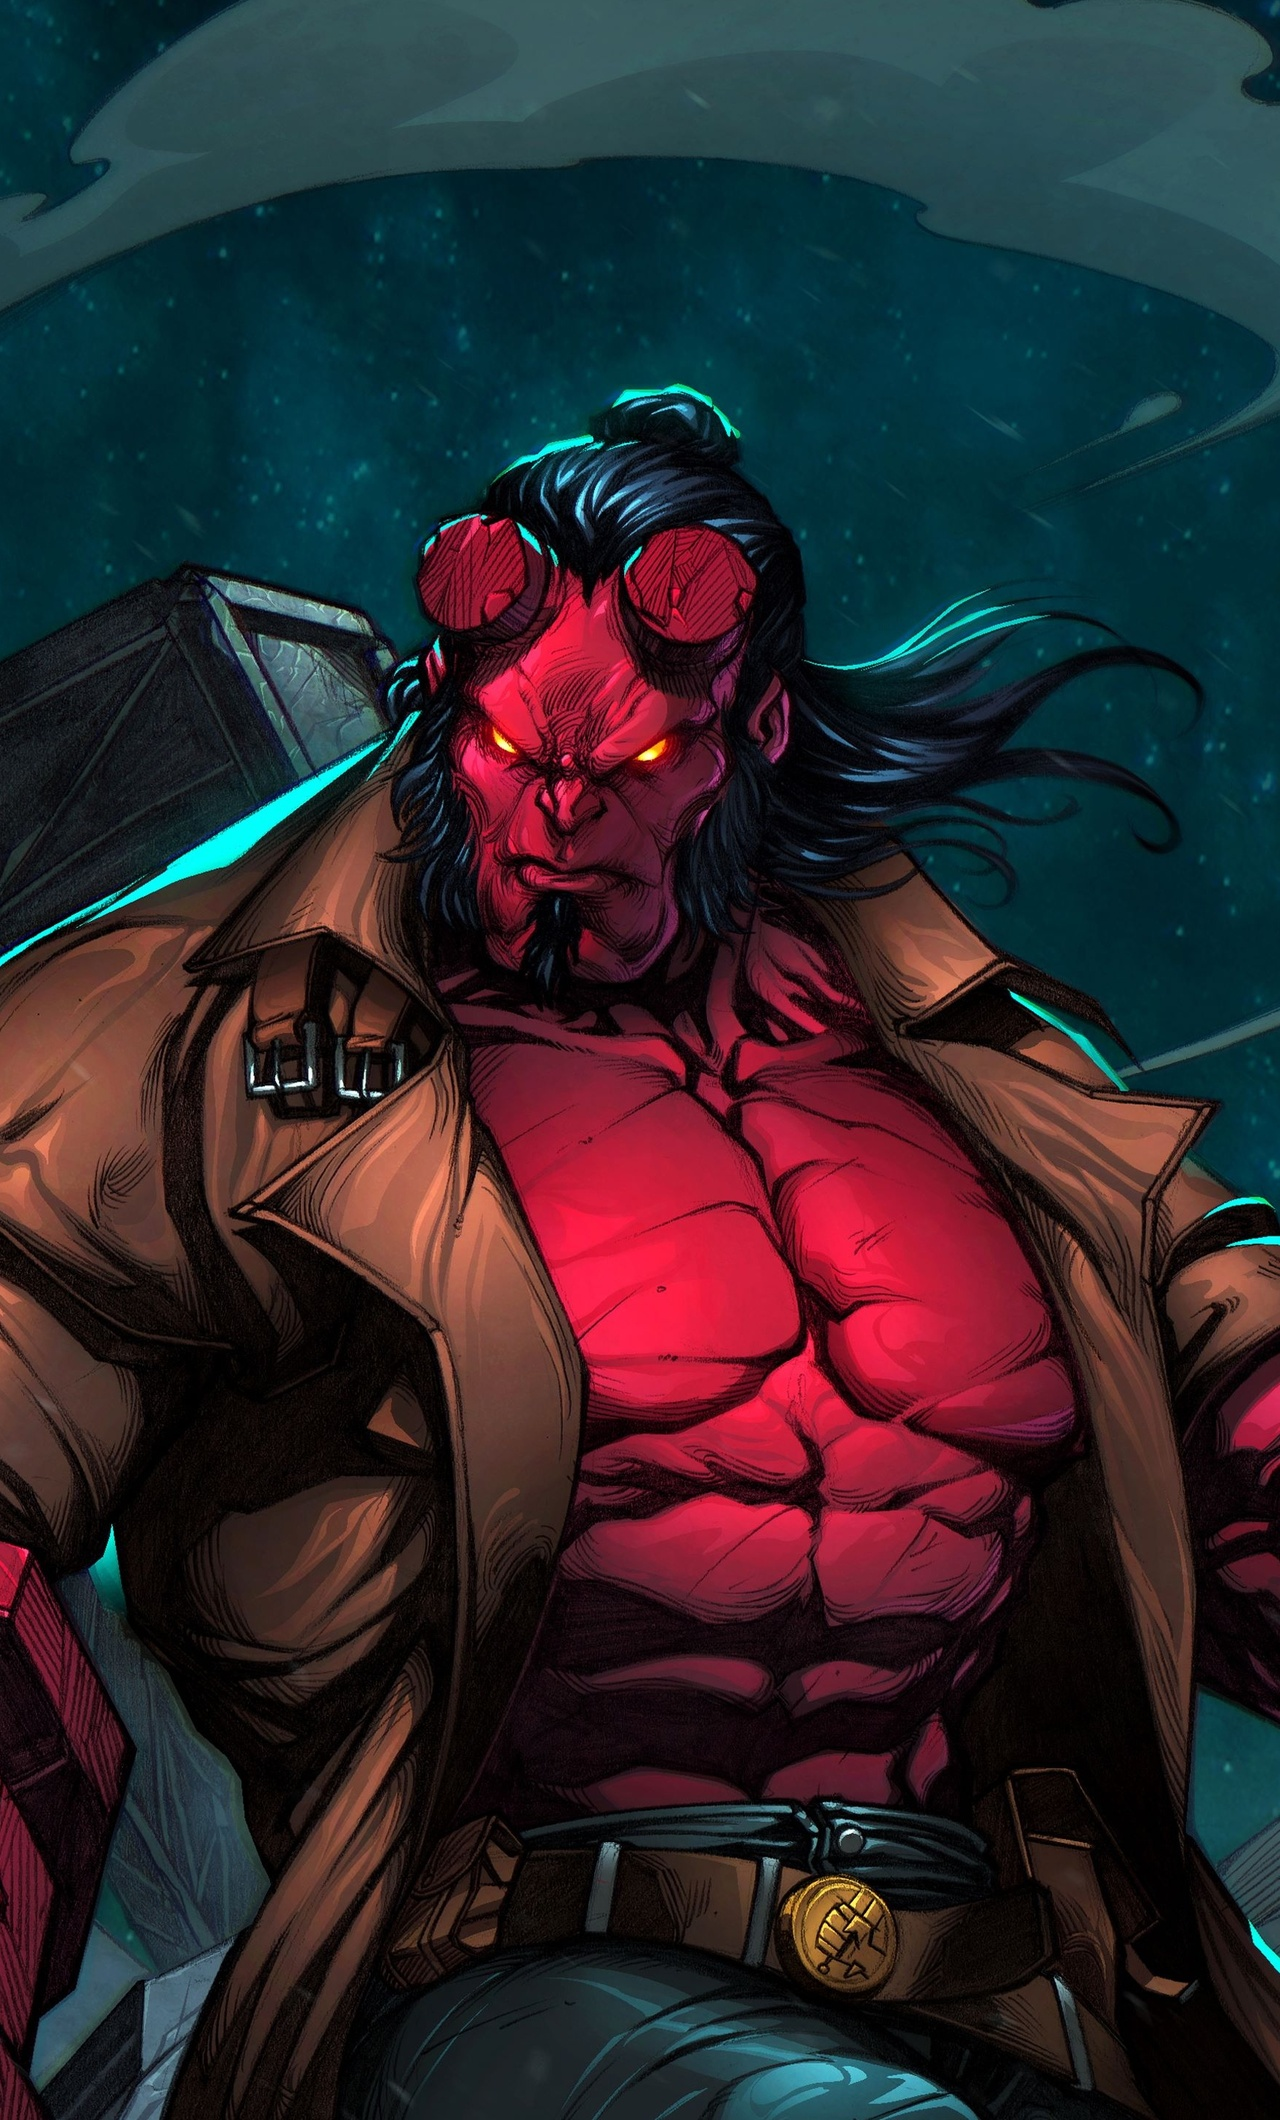 1280x2120 Hellboy 4k Art Iphone 6 Hd 4k Wallpapers Images